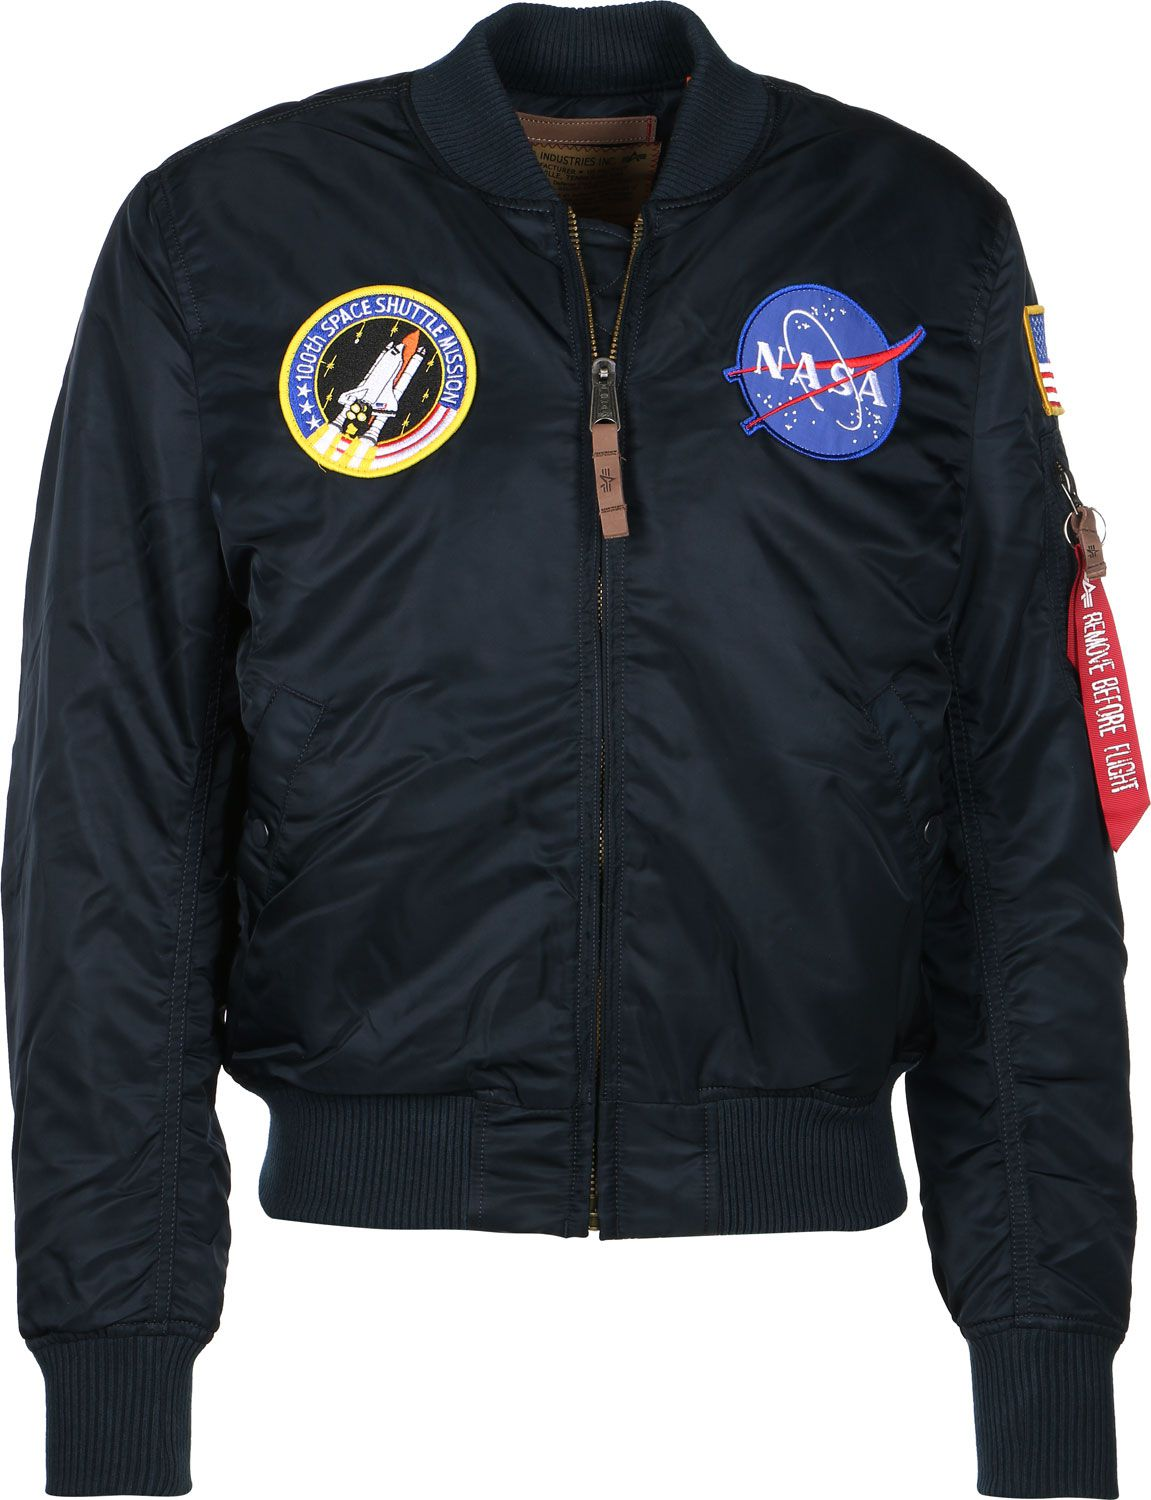 Alpha Industries pánská bunda MA-1 VF NASA (modrá) - Etappa